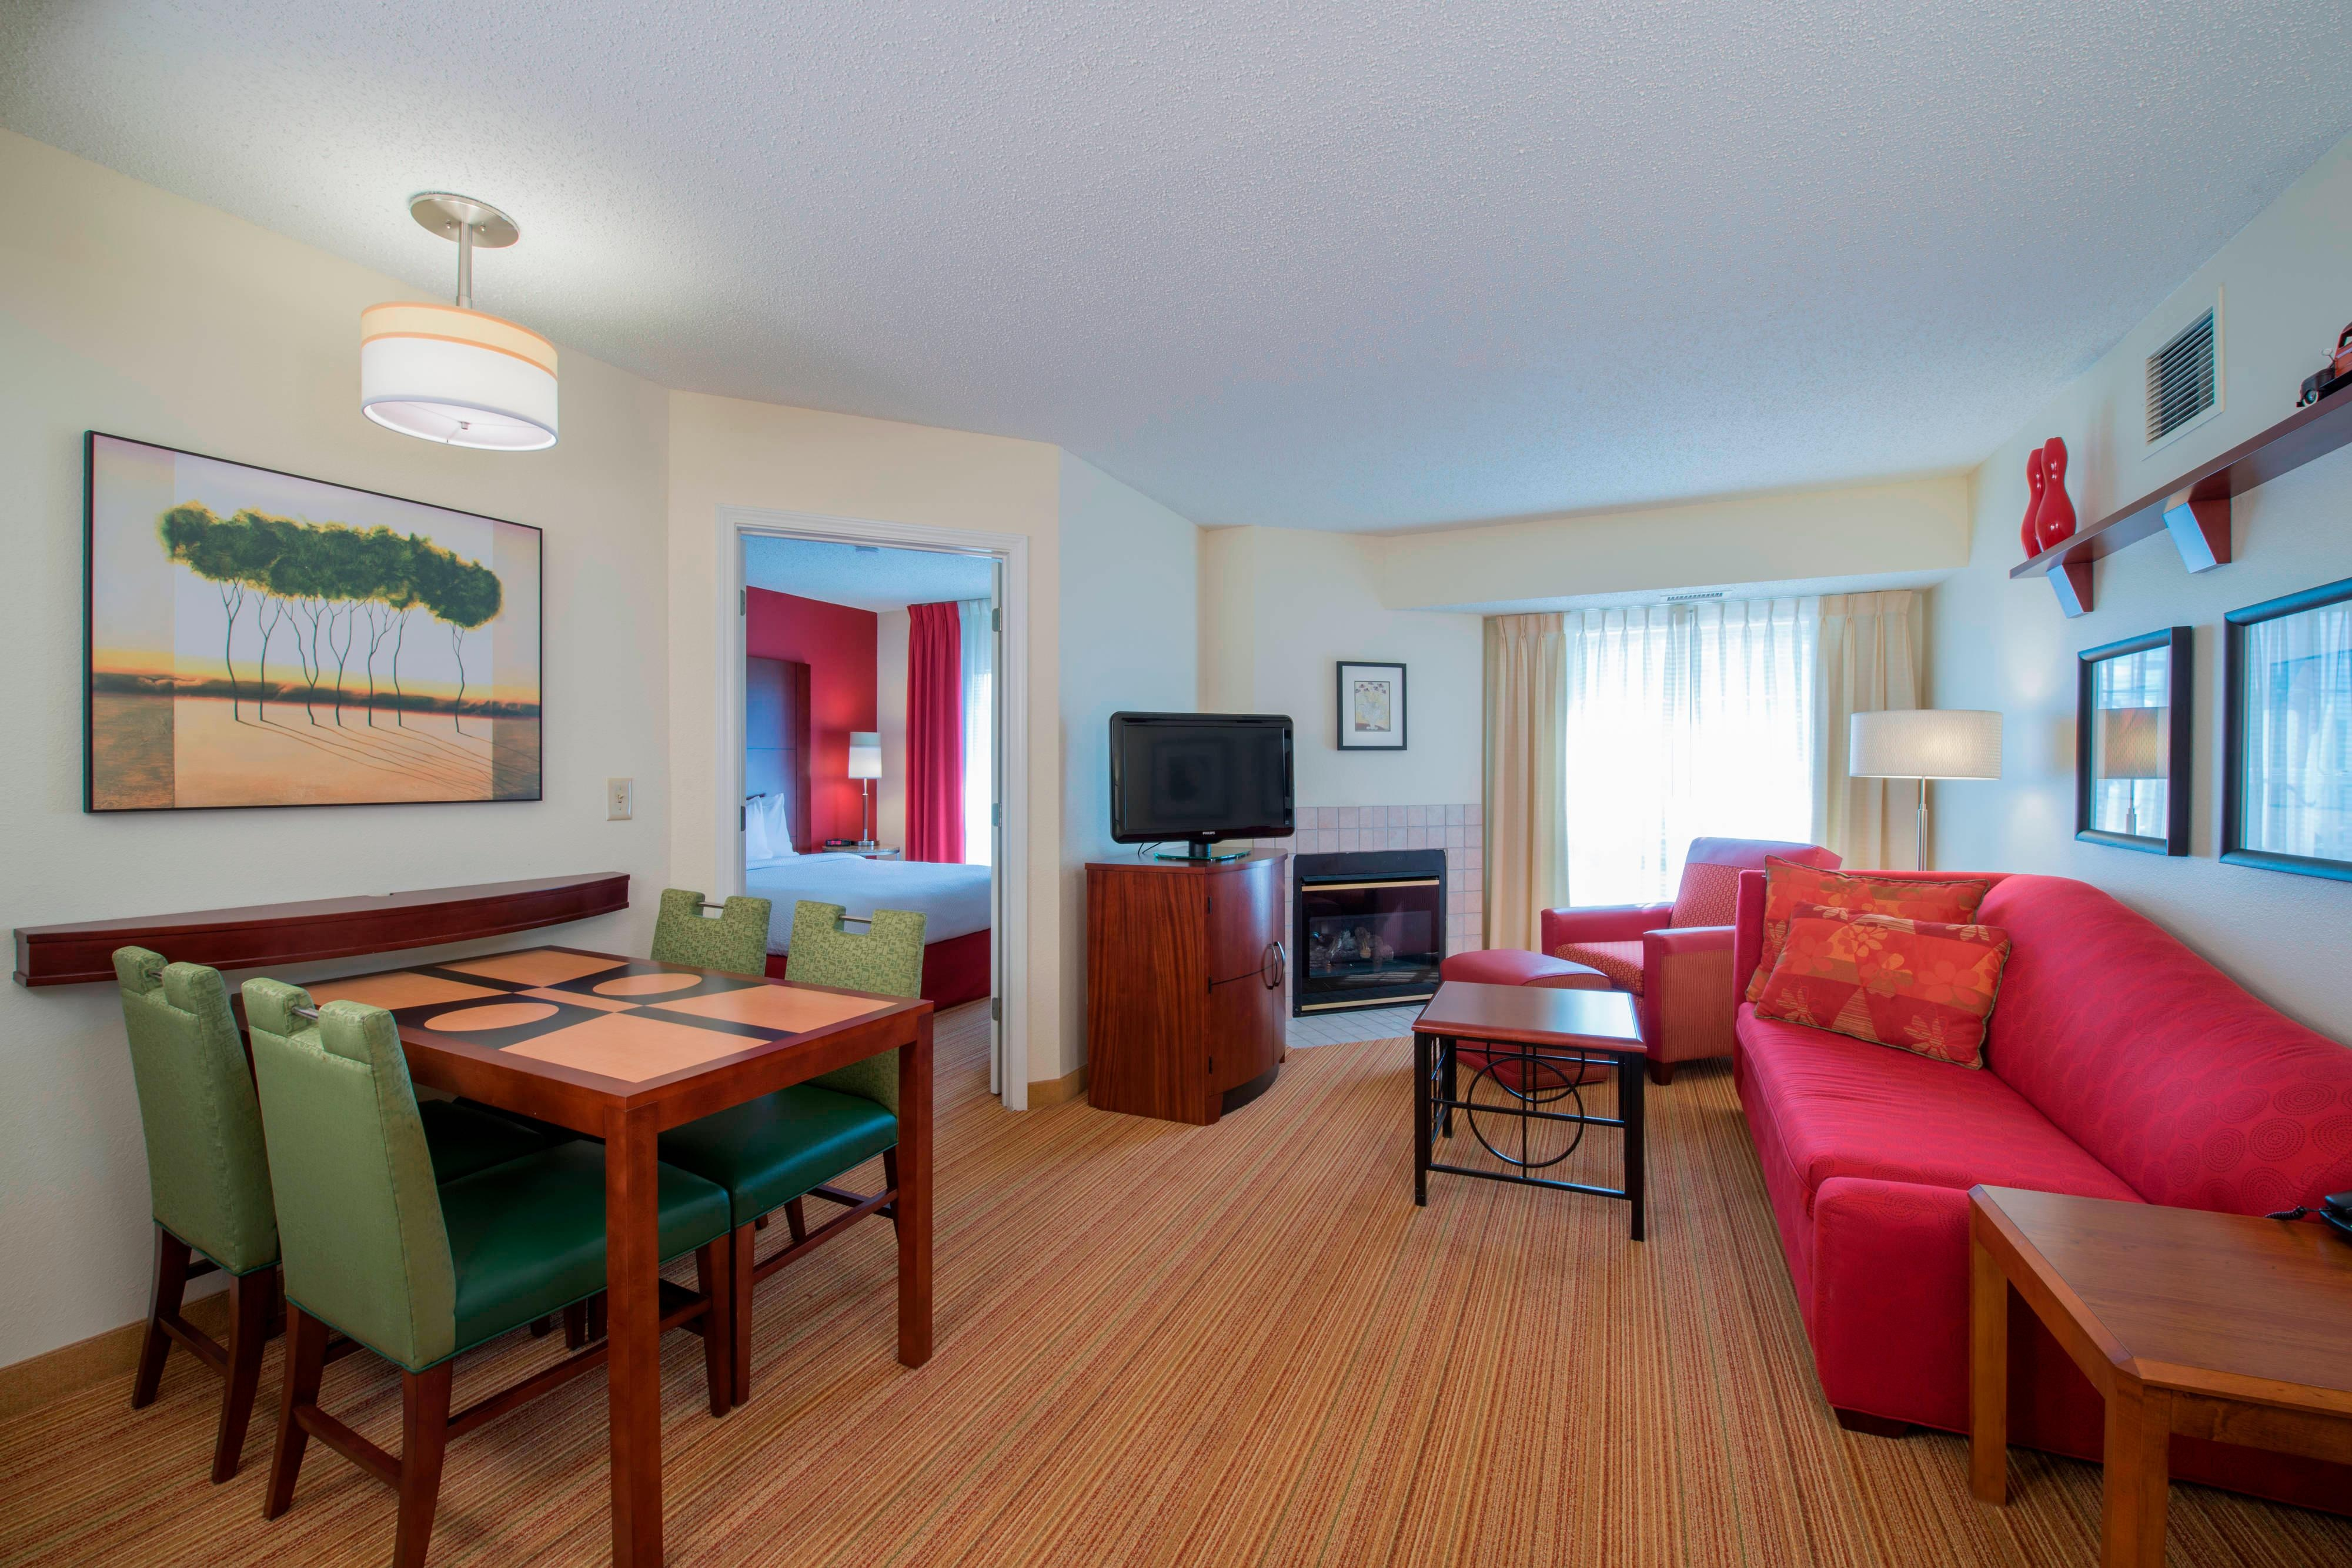 little rock ar hotels residence inn by marriott little rock ar hotel